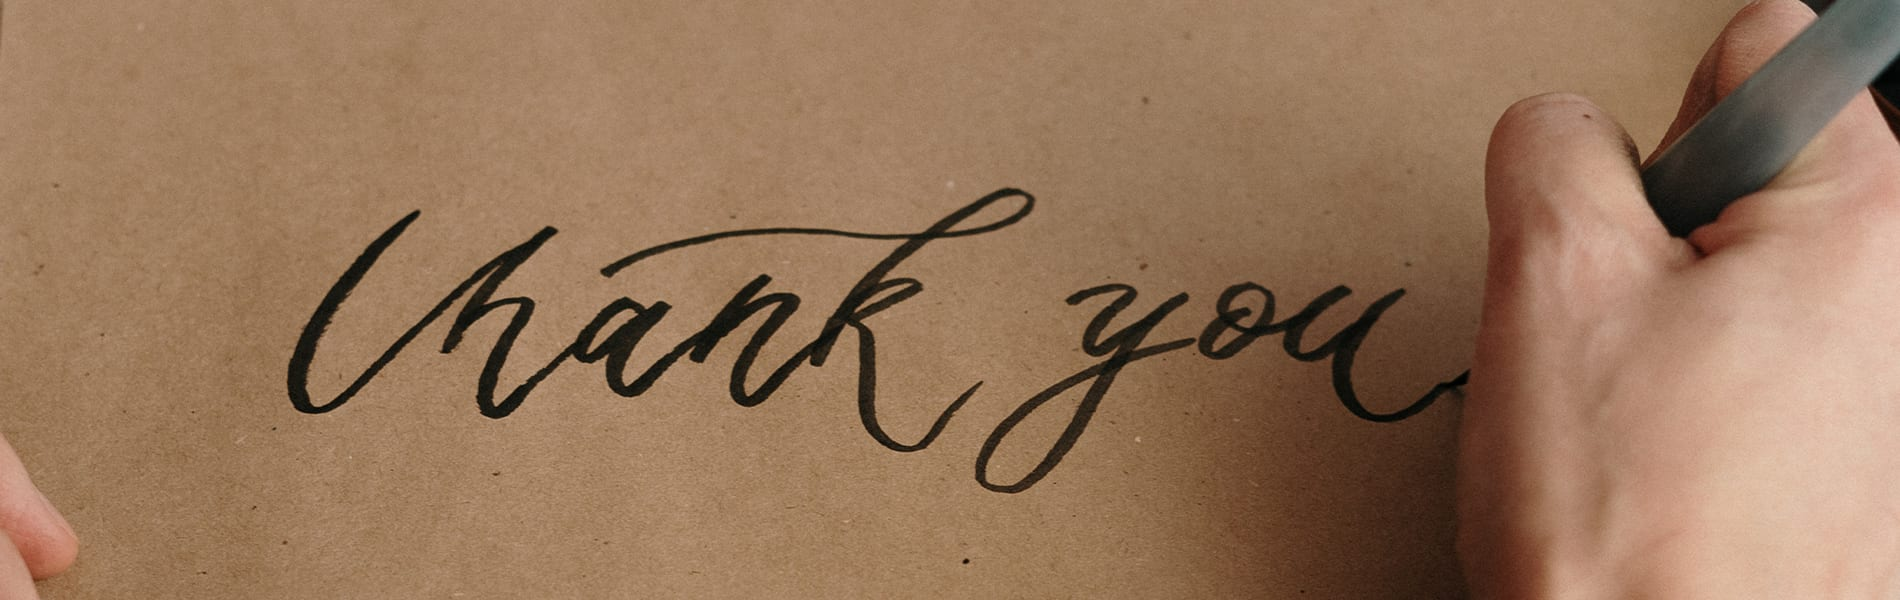 Creative ways to thank your donor